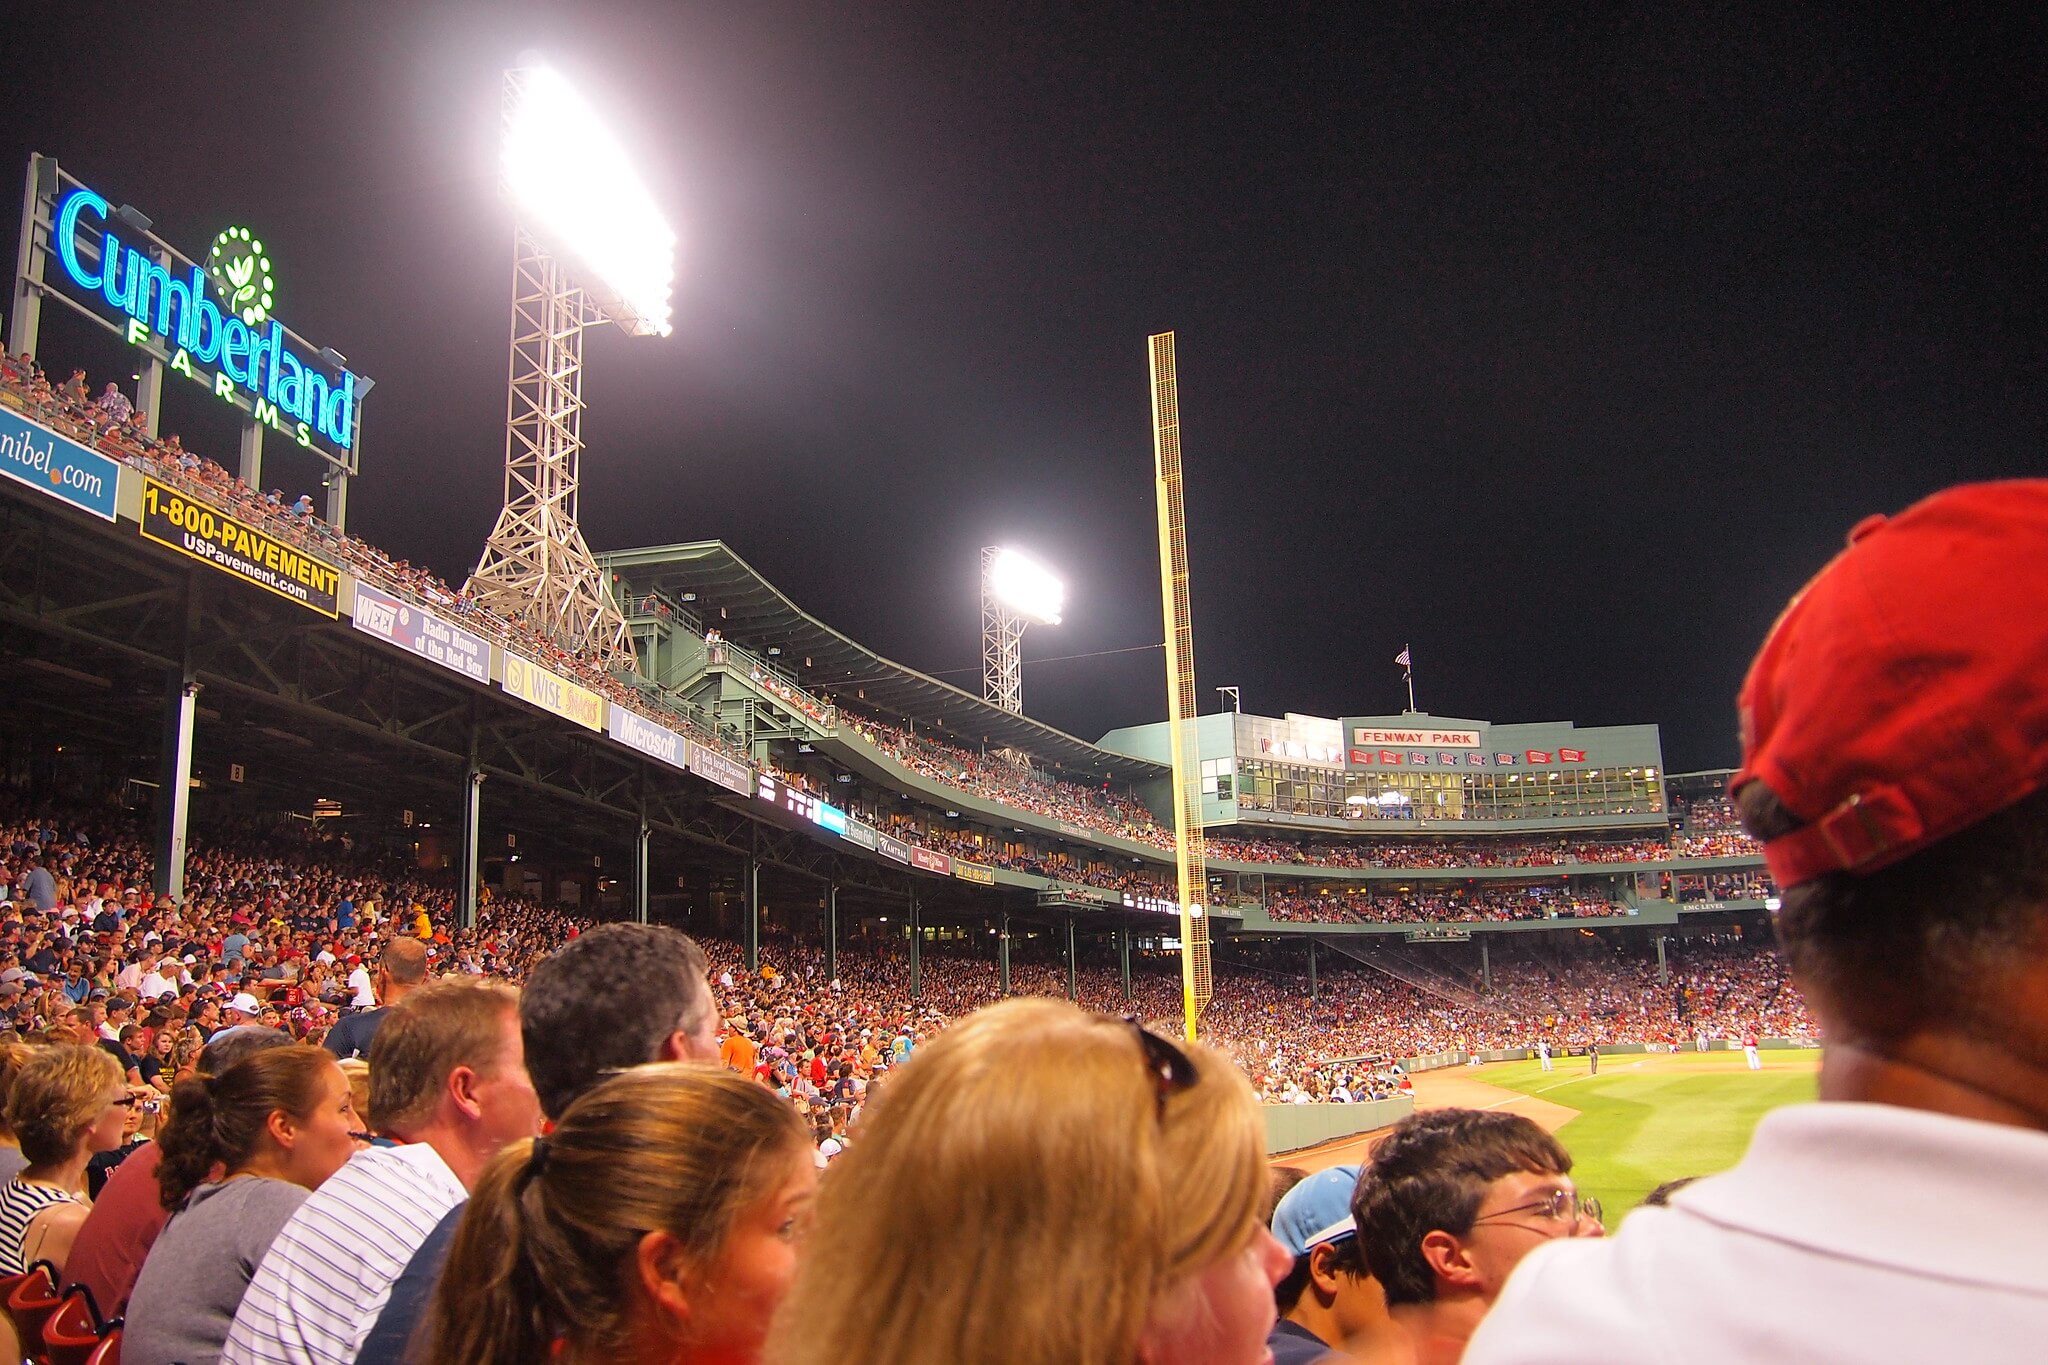 Boston Red Sox fans game